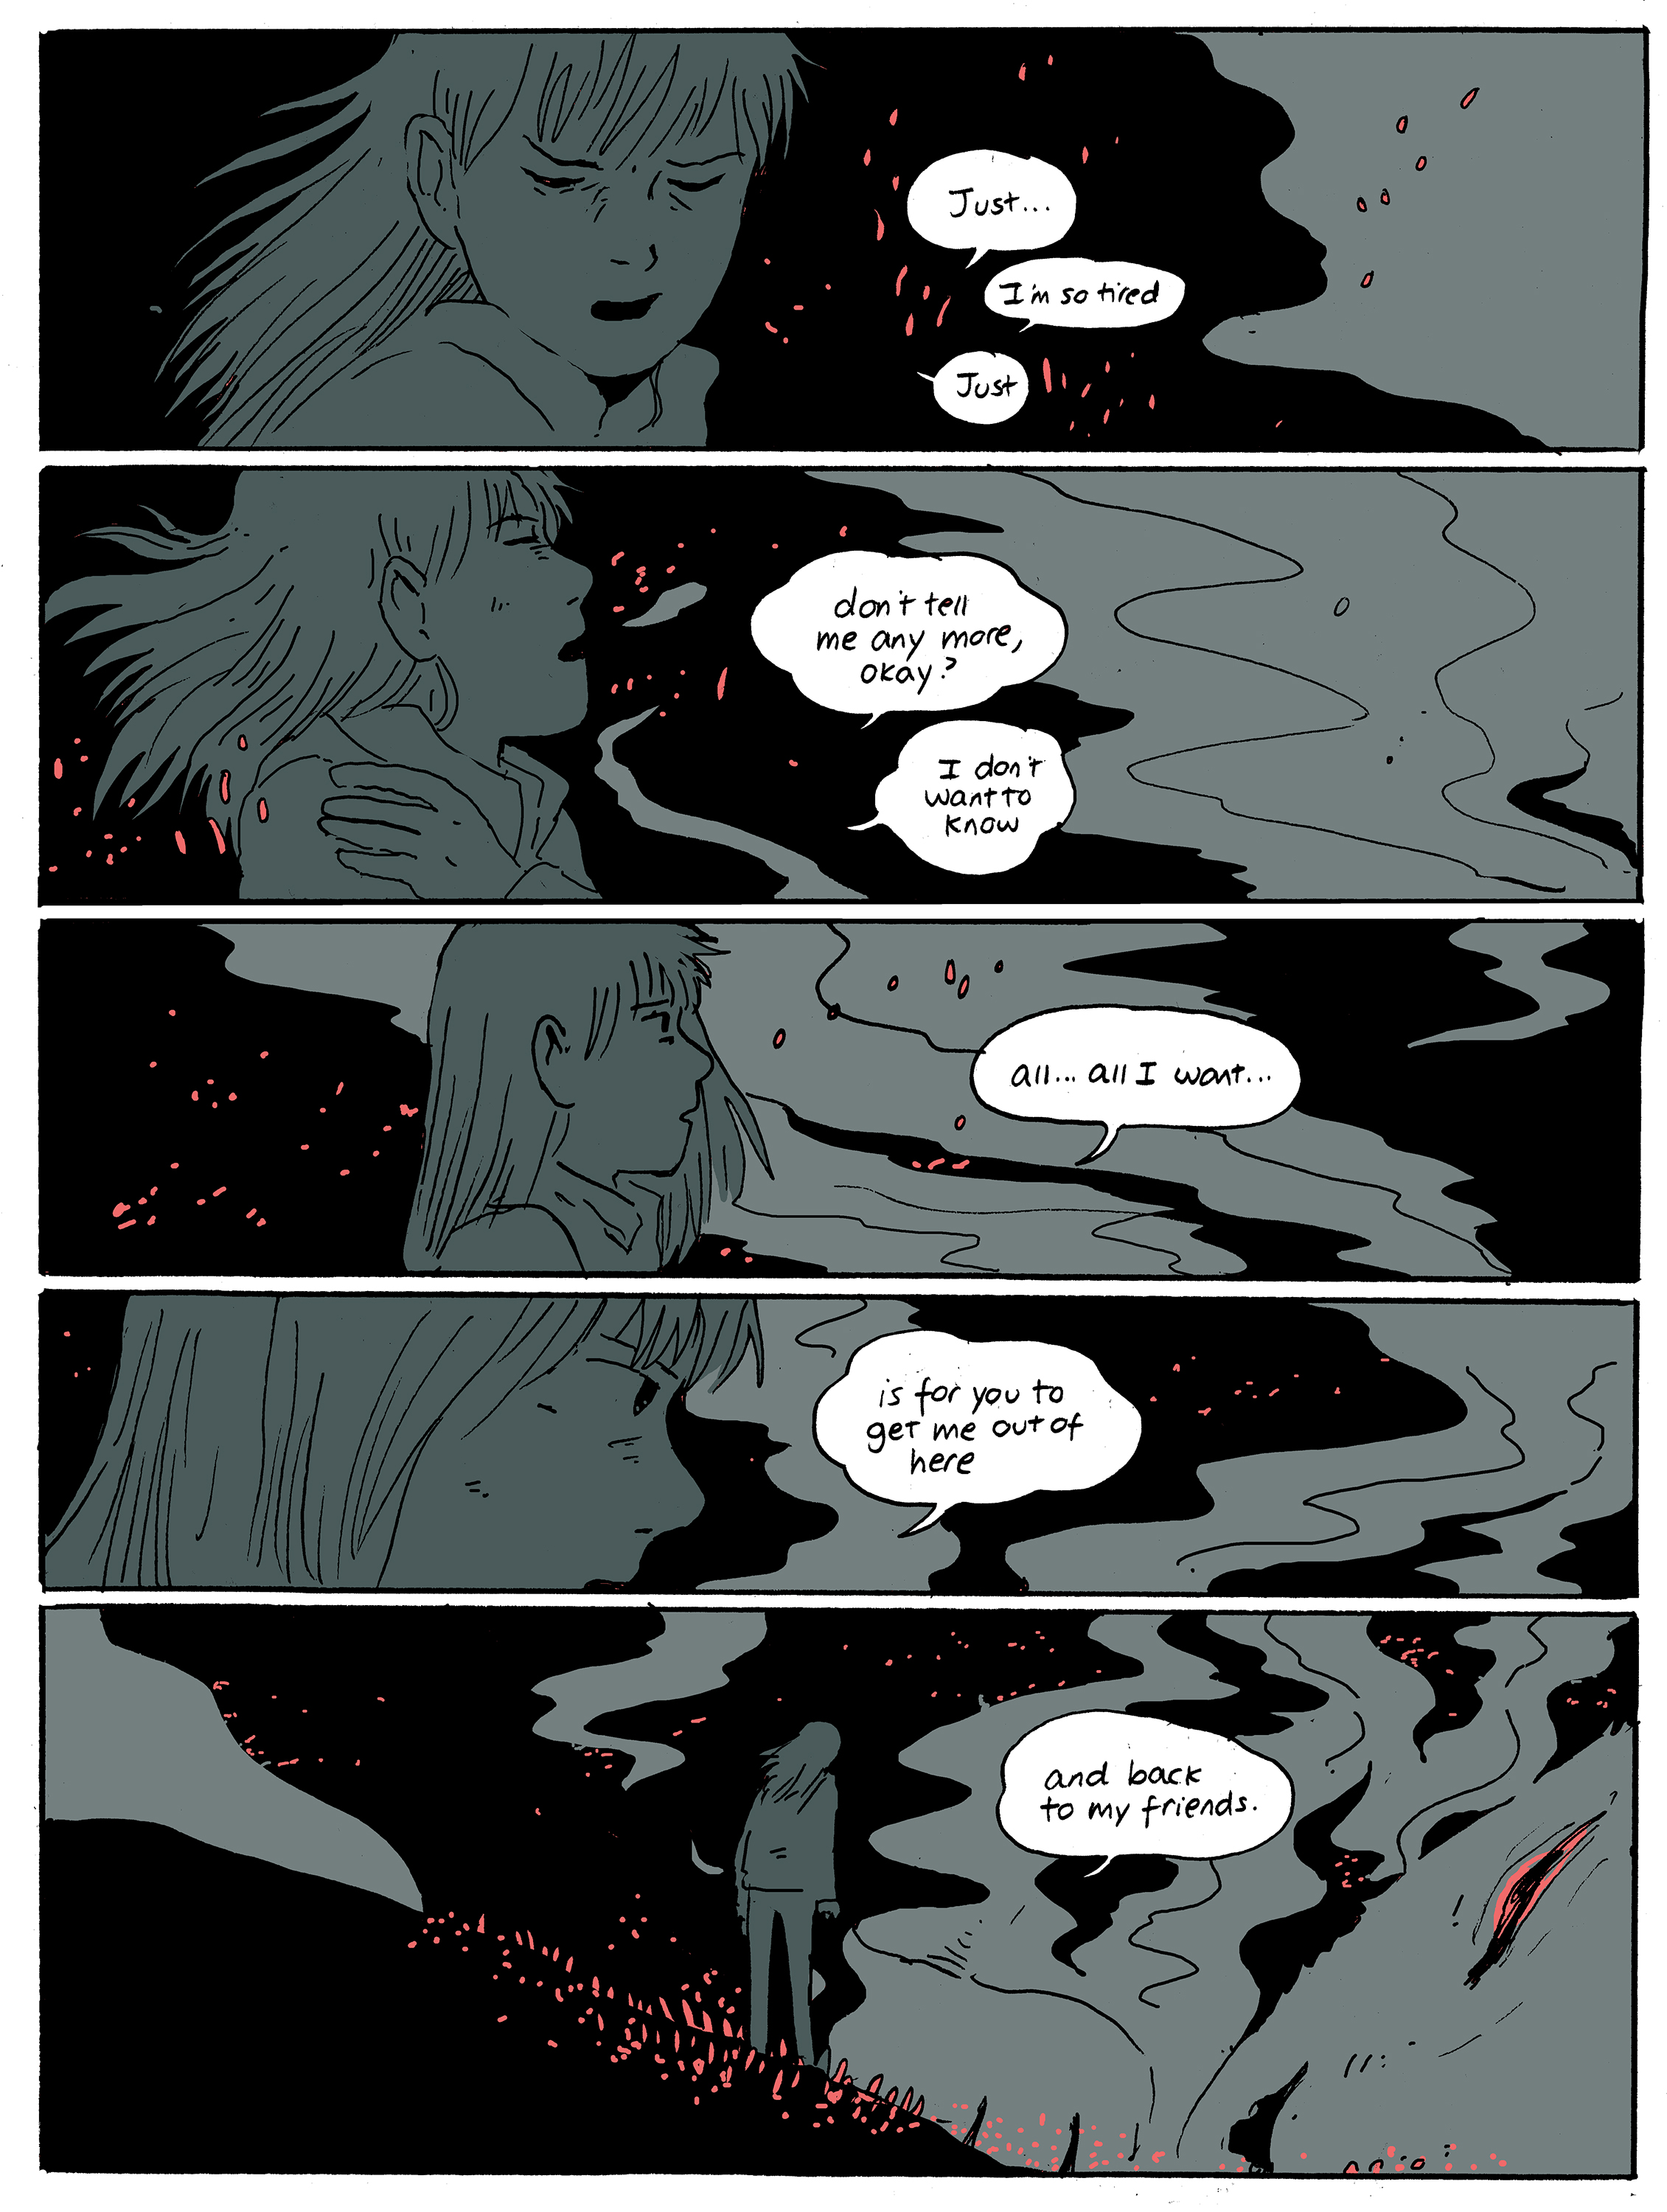 chapter17_page18.jpg